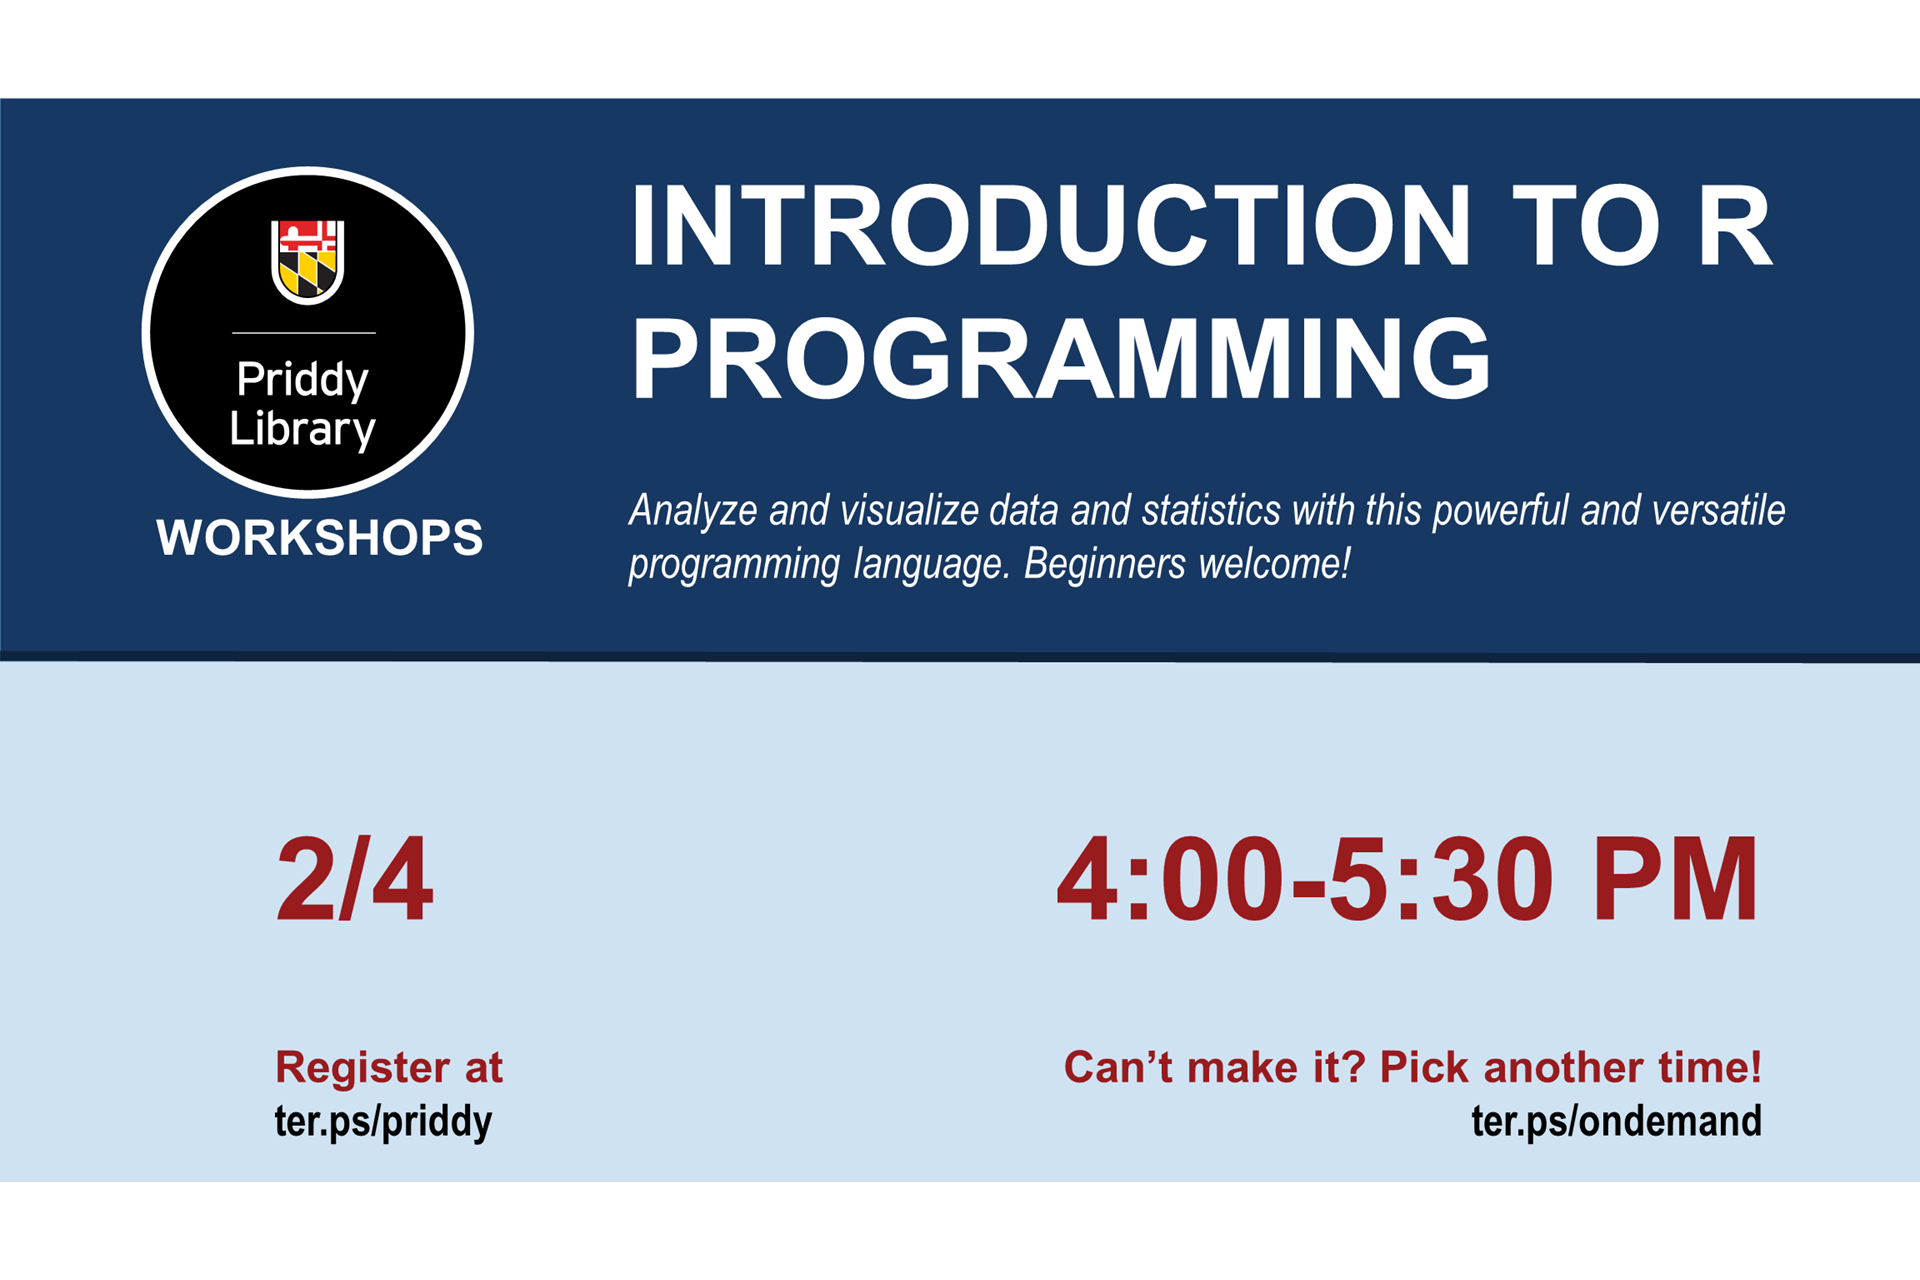 Intro to R Programming Workshop Flyer